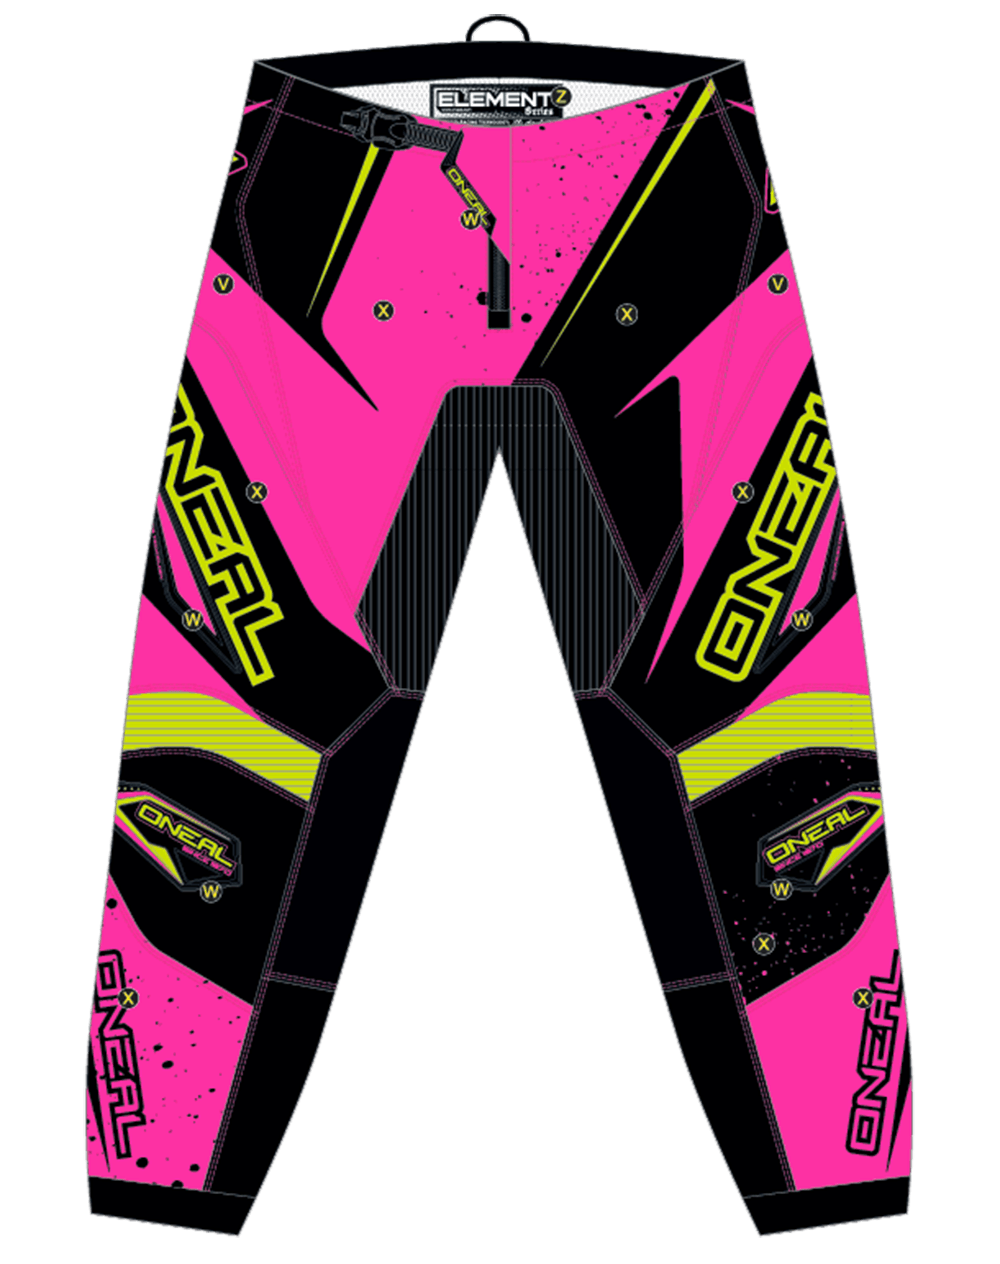 ELEMENT Pants RACEWEAR WOMEN pink/yellow 13/14 (38) - ELEMENT Pants RACEWEAR WOMEN pink/yellow 13/14 (38)